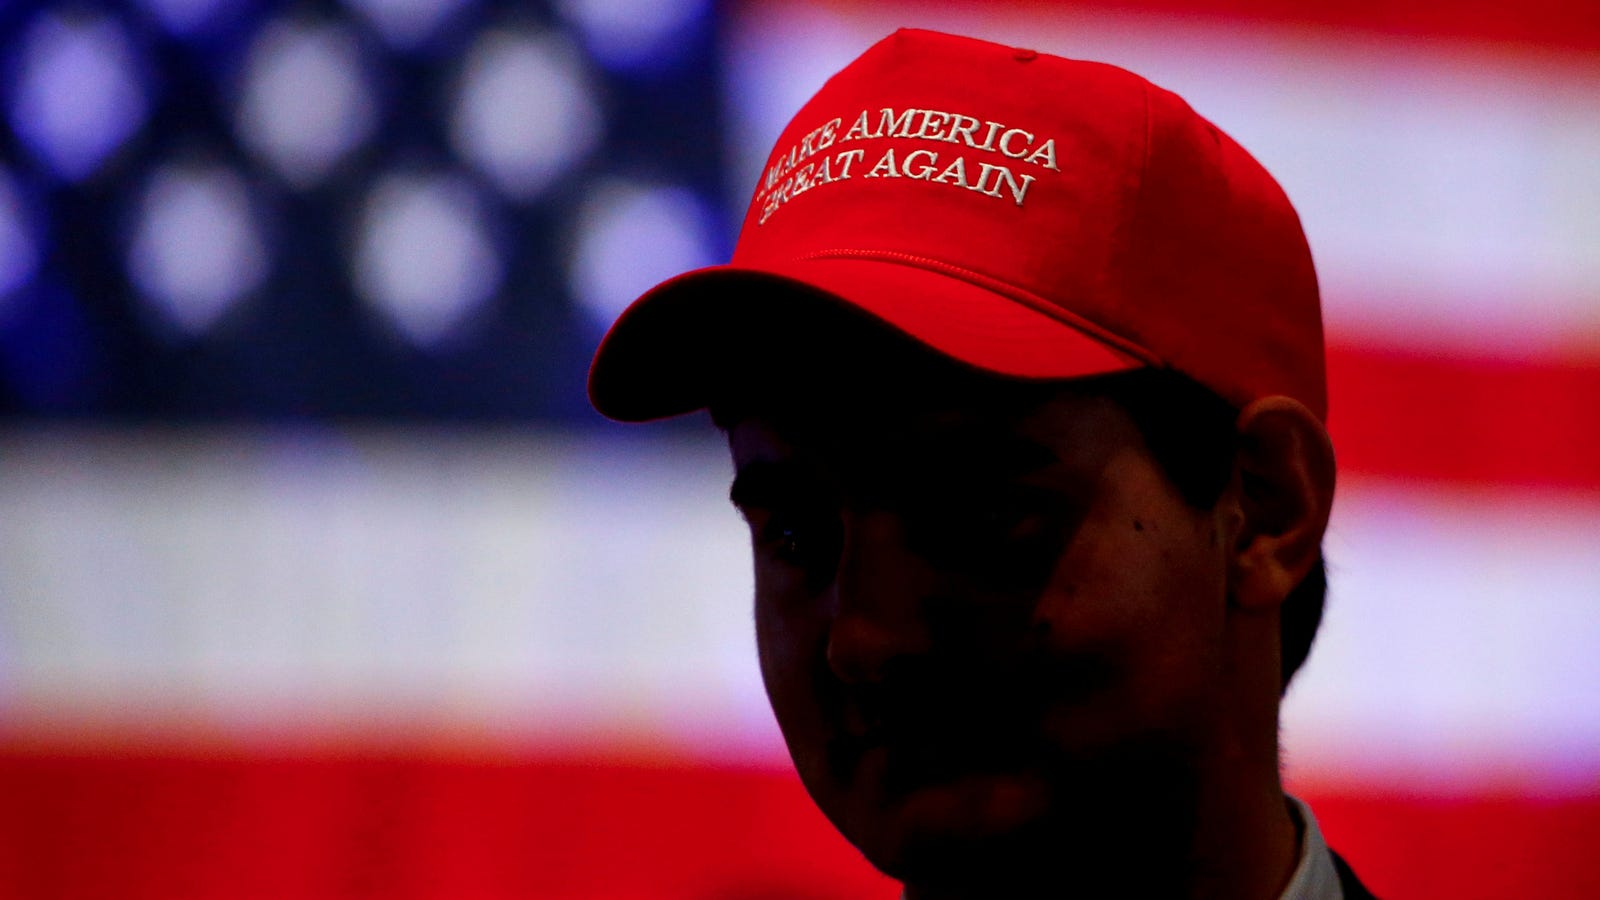 QnA VBage Owner of MAGA-Friendly Yelp Knockoff Threatens to Call FBI After Researcher Exposes Security Holes